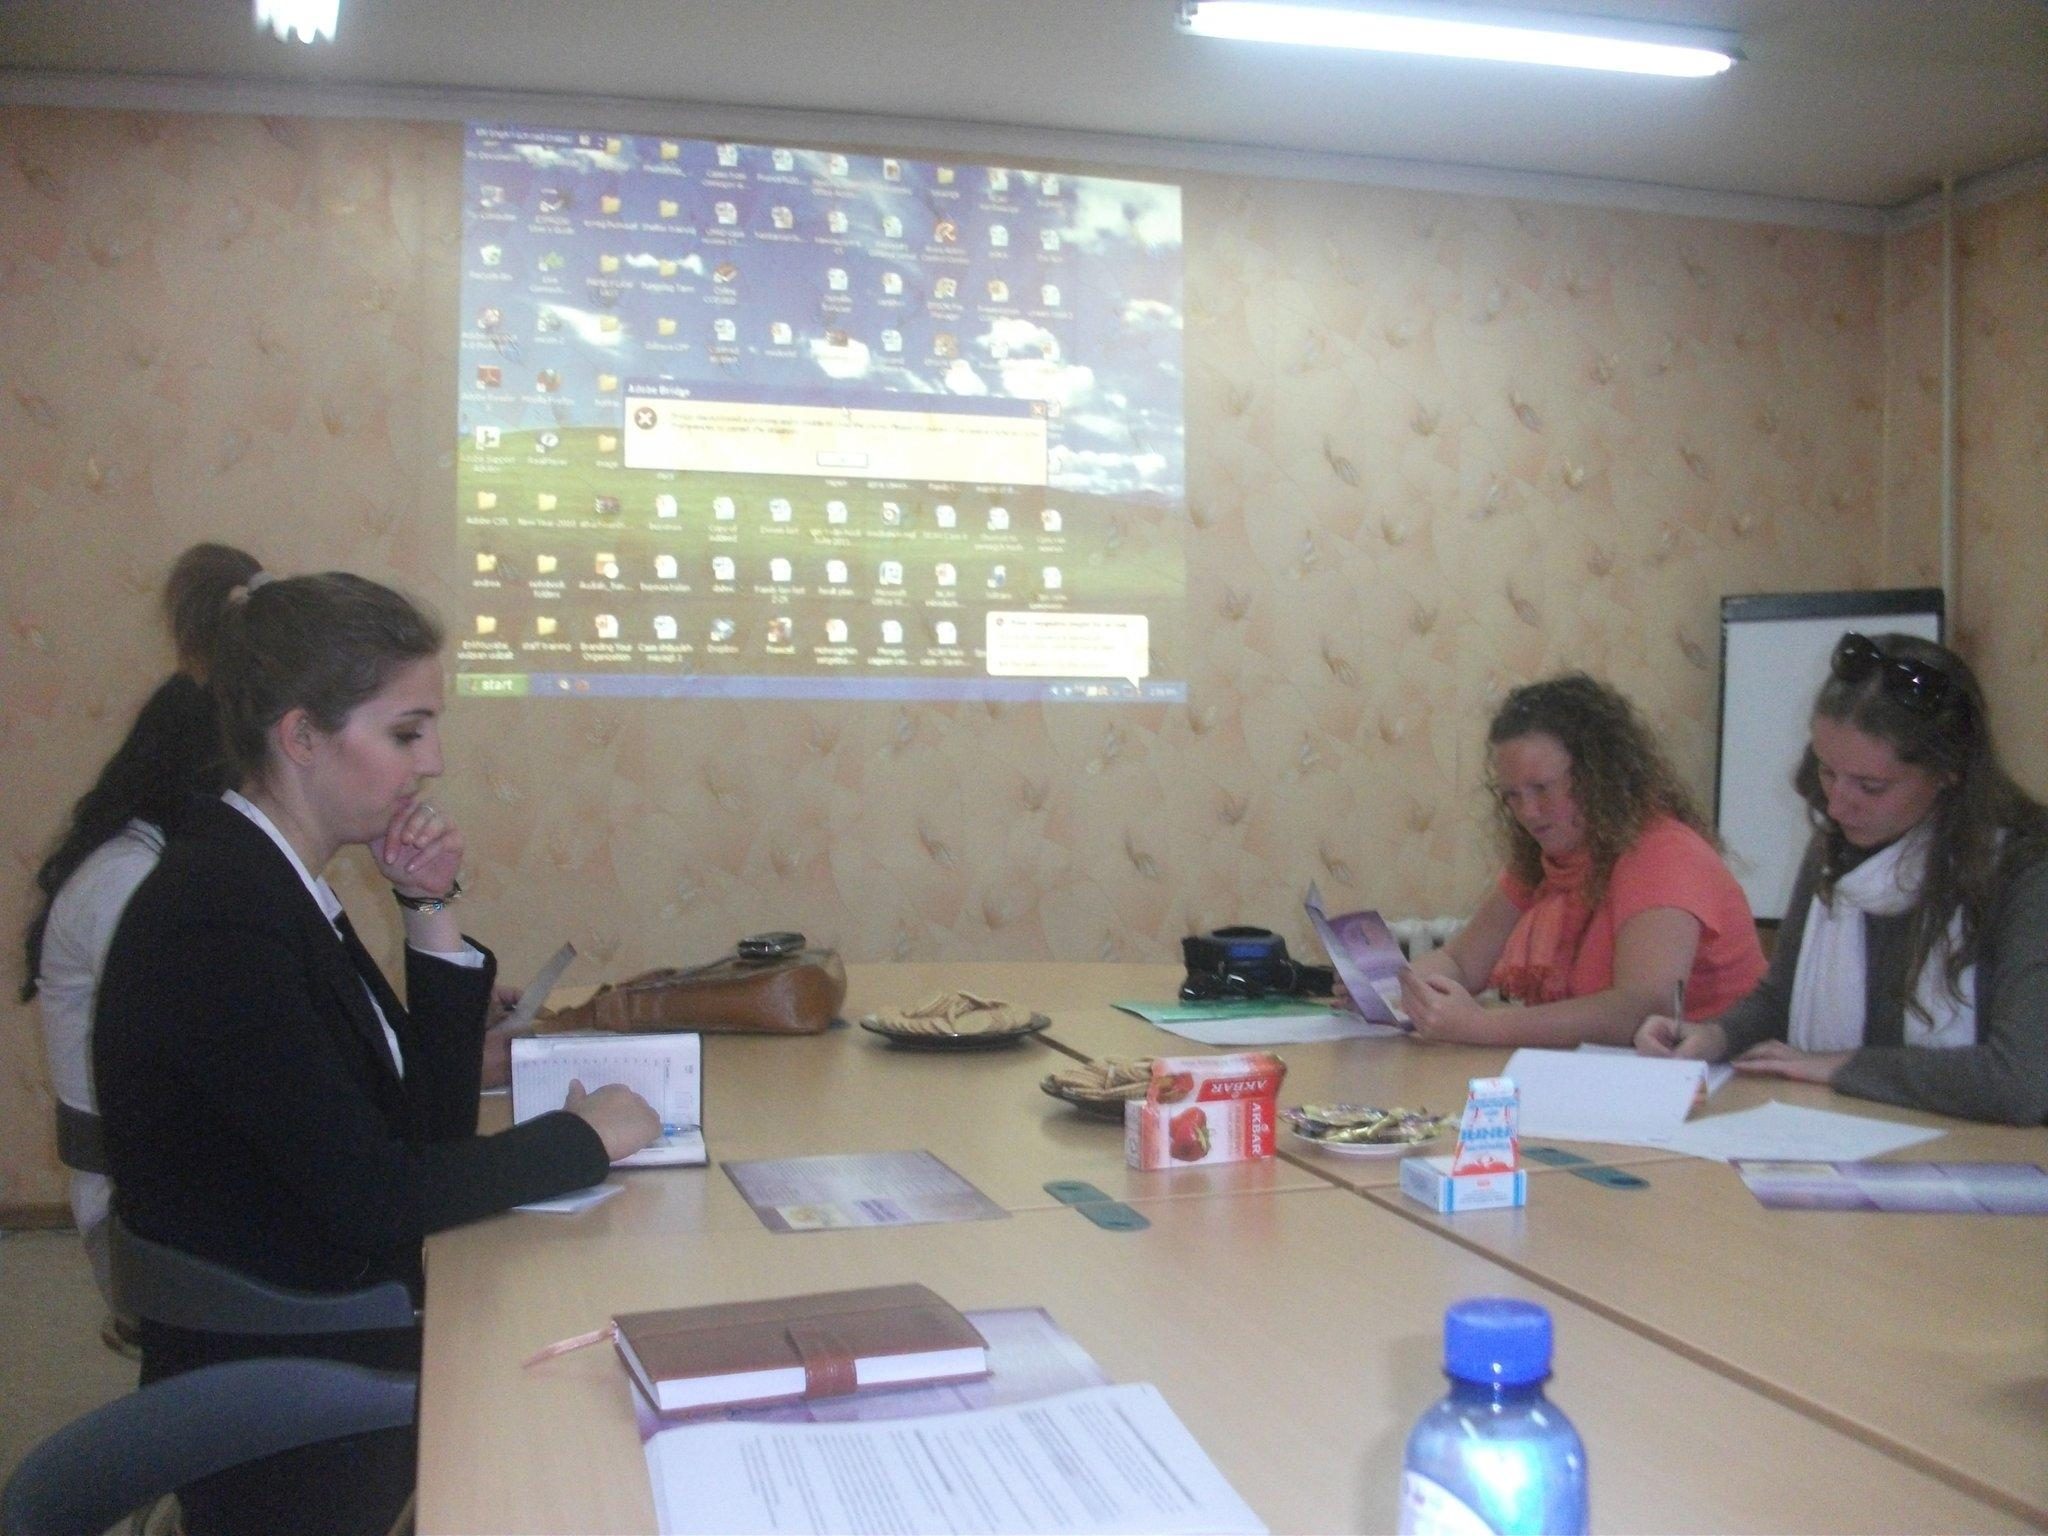 A local NGO in Ulaanbaatar runs a workshop for students doing Human Rights internships in Mongolia.